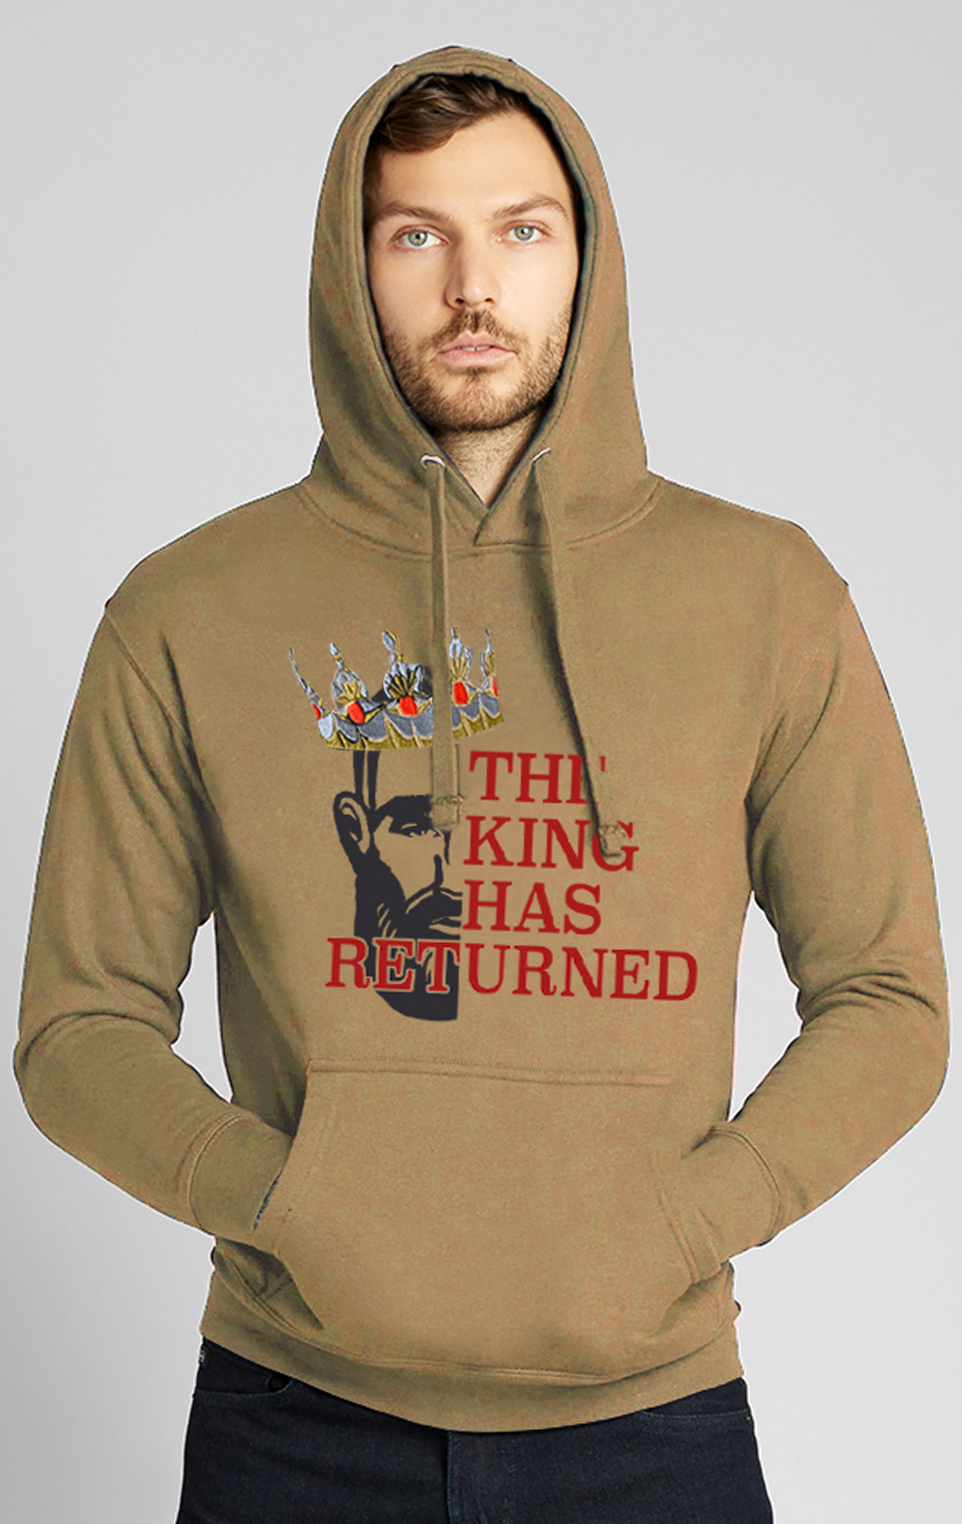 The King Has Returned Hooded Sweatshirt in Khaki